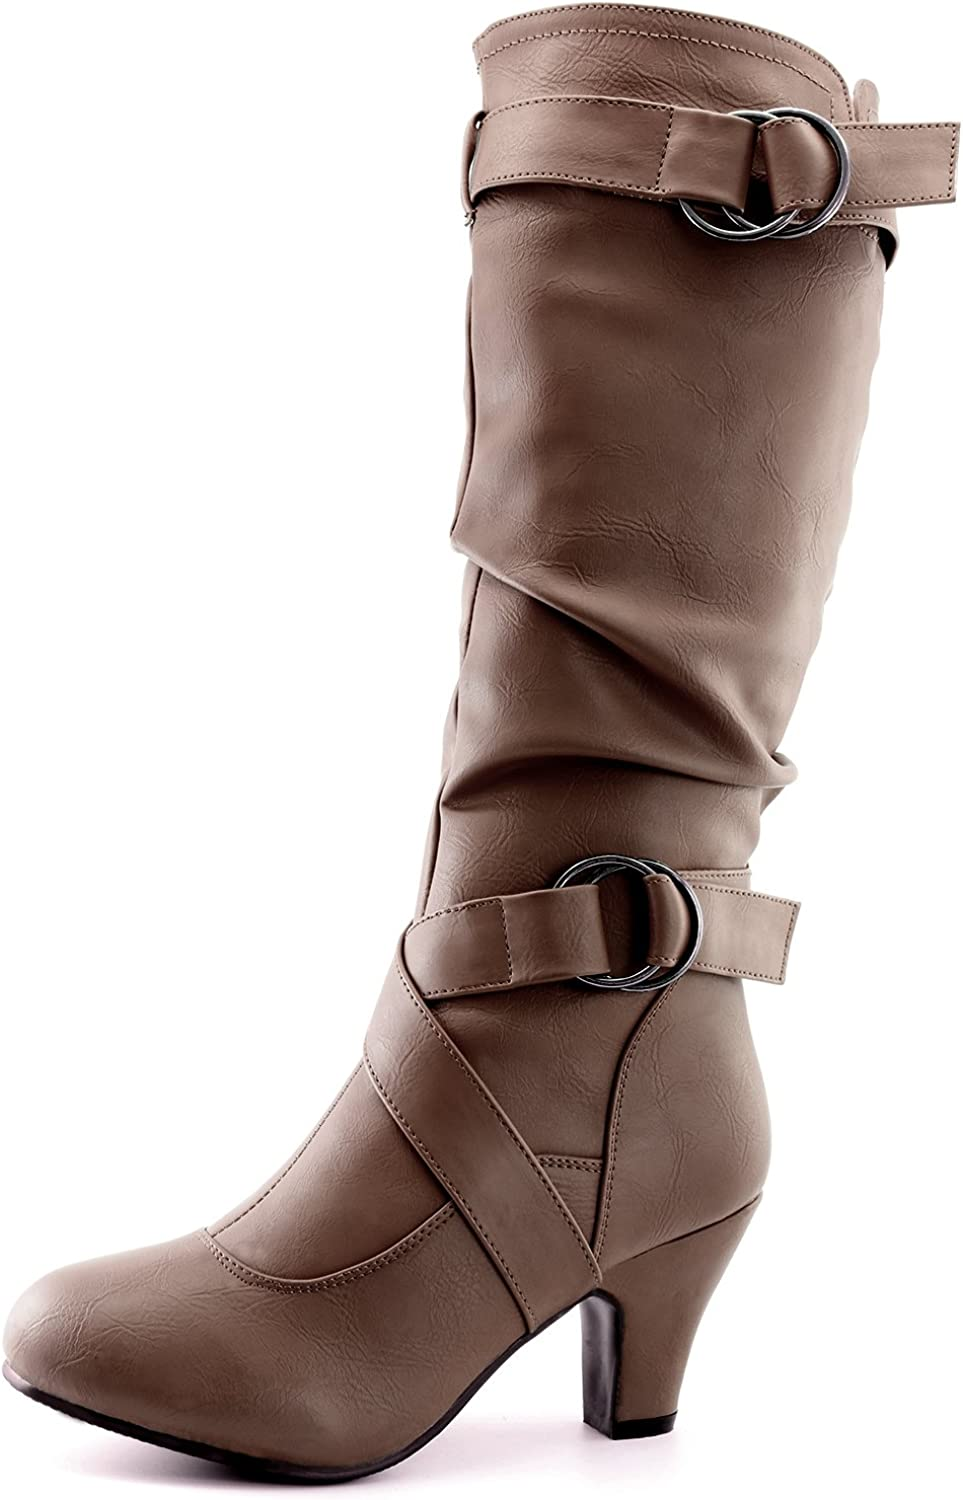 Dailyshoes Women's Mid Calf Ankle Strap Slouchy Fashion Boots, Taupe Pu, 11 B(M) US